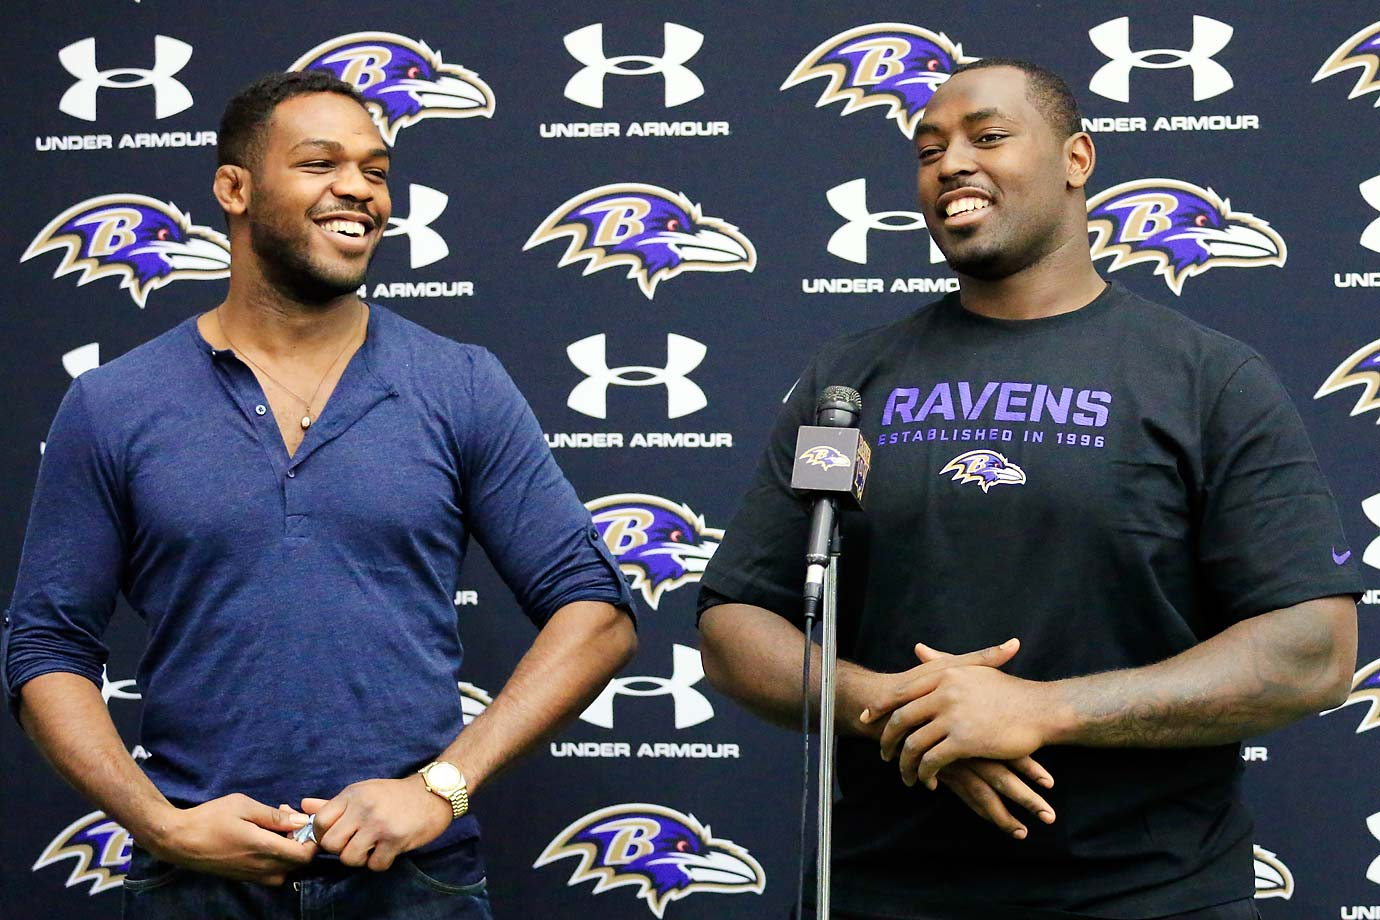 Jon Jones visiting his brother Arthur Jones who is a defensive end in the National Football League.